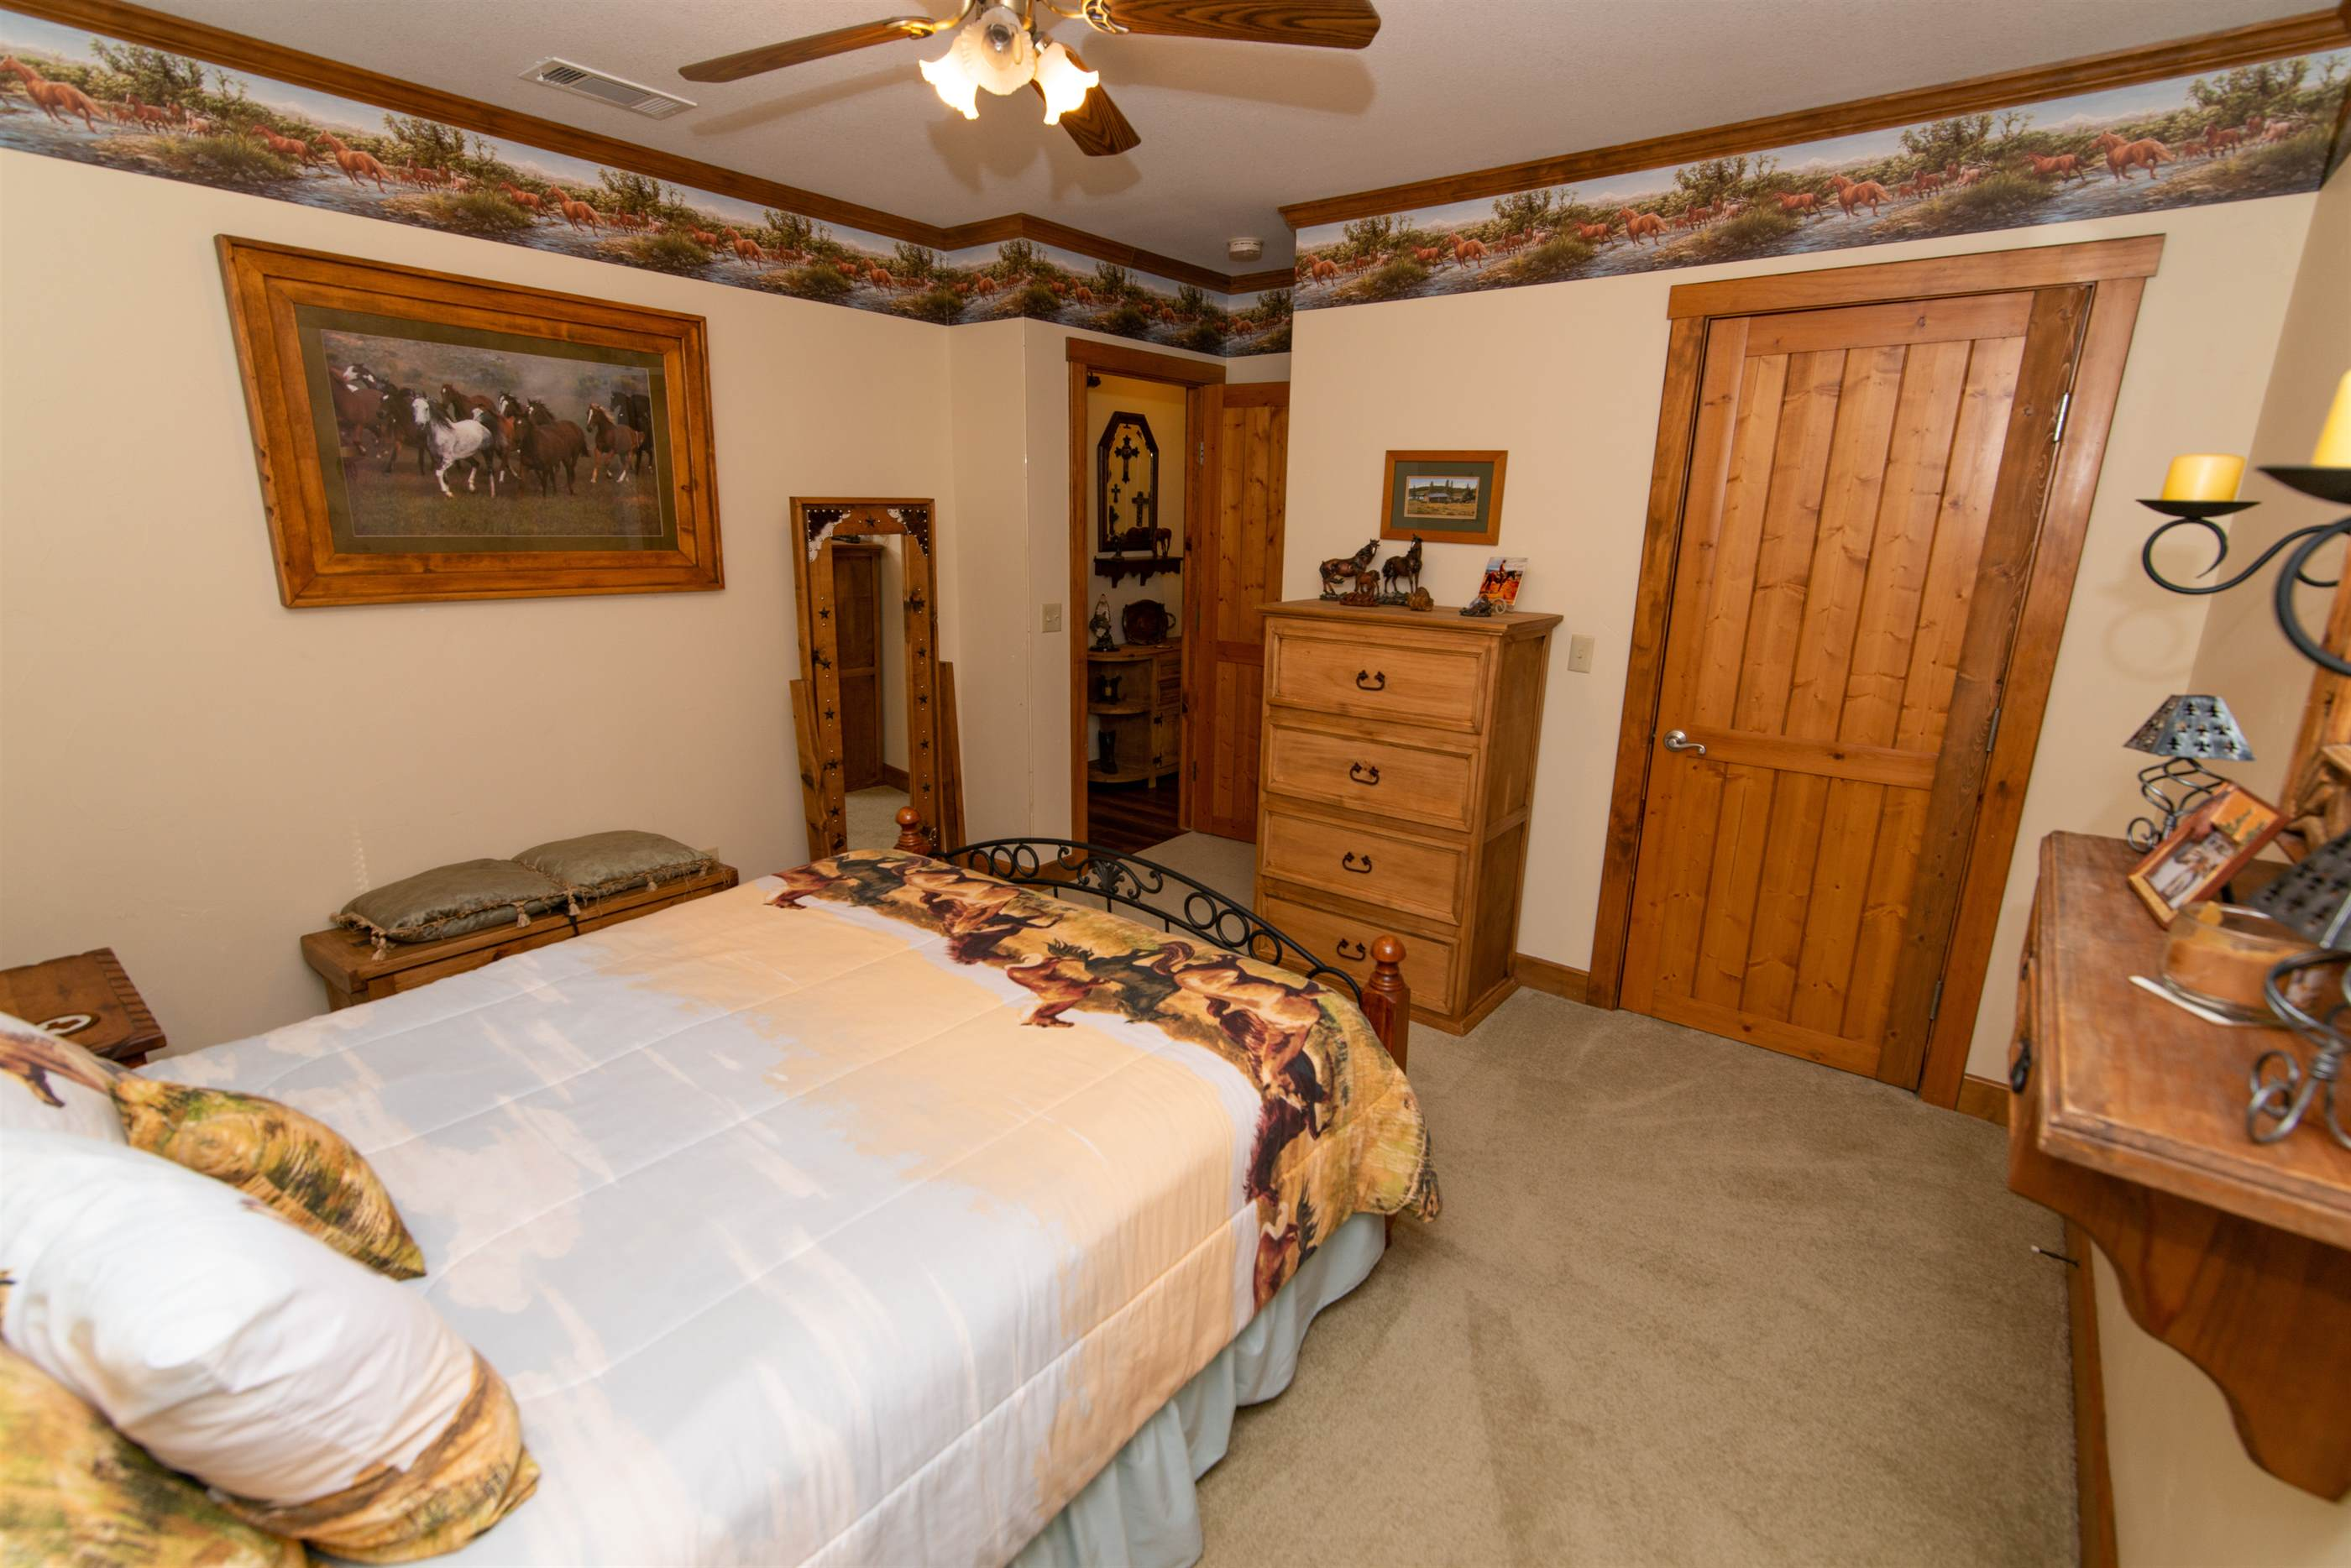 Western Retreat, #19 Luxury Place - SHORT TERM, Pagosa Springs, CO 81147